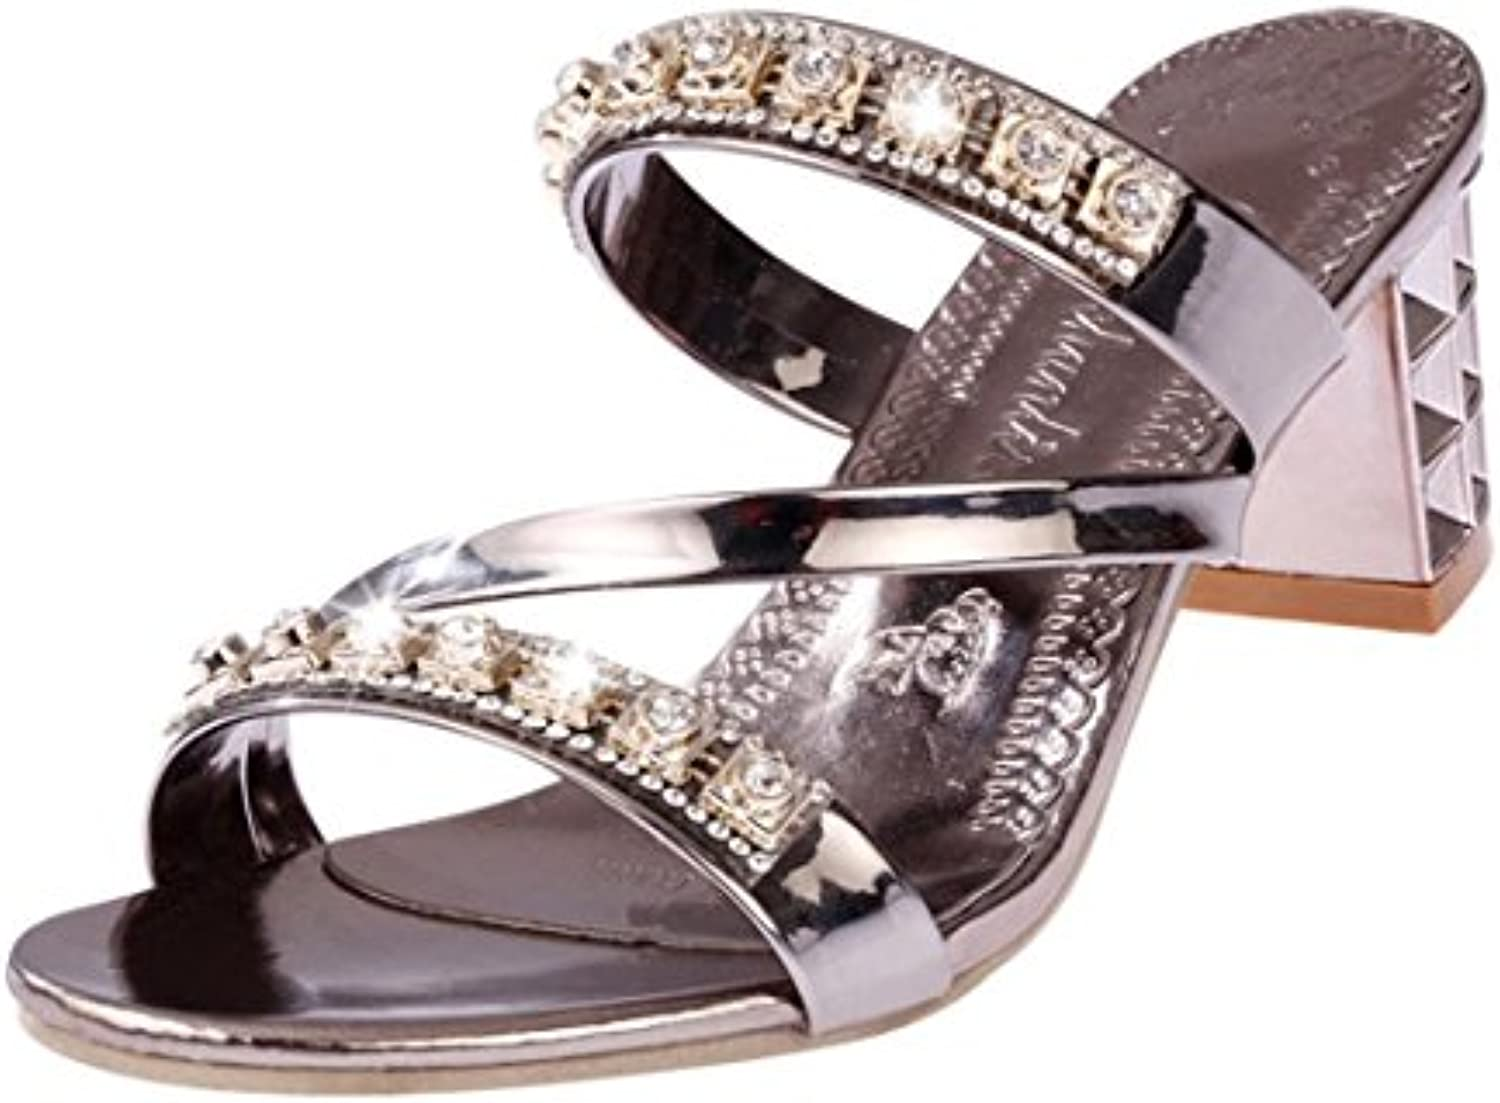 2bbd173a1b185 WSK B07C9RCXZN High-heeled shoes Parent Flip-flops with rhinestone women s  sandals with... and slippers Large size ladies  sandals with.